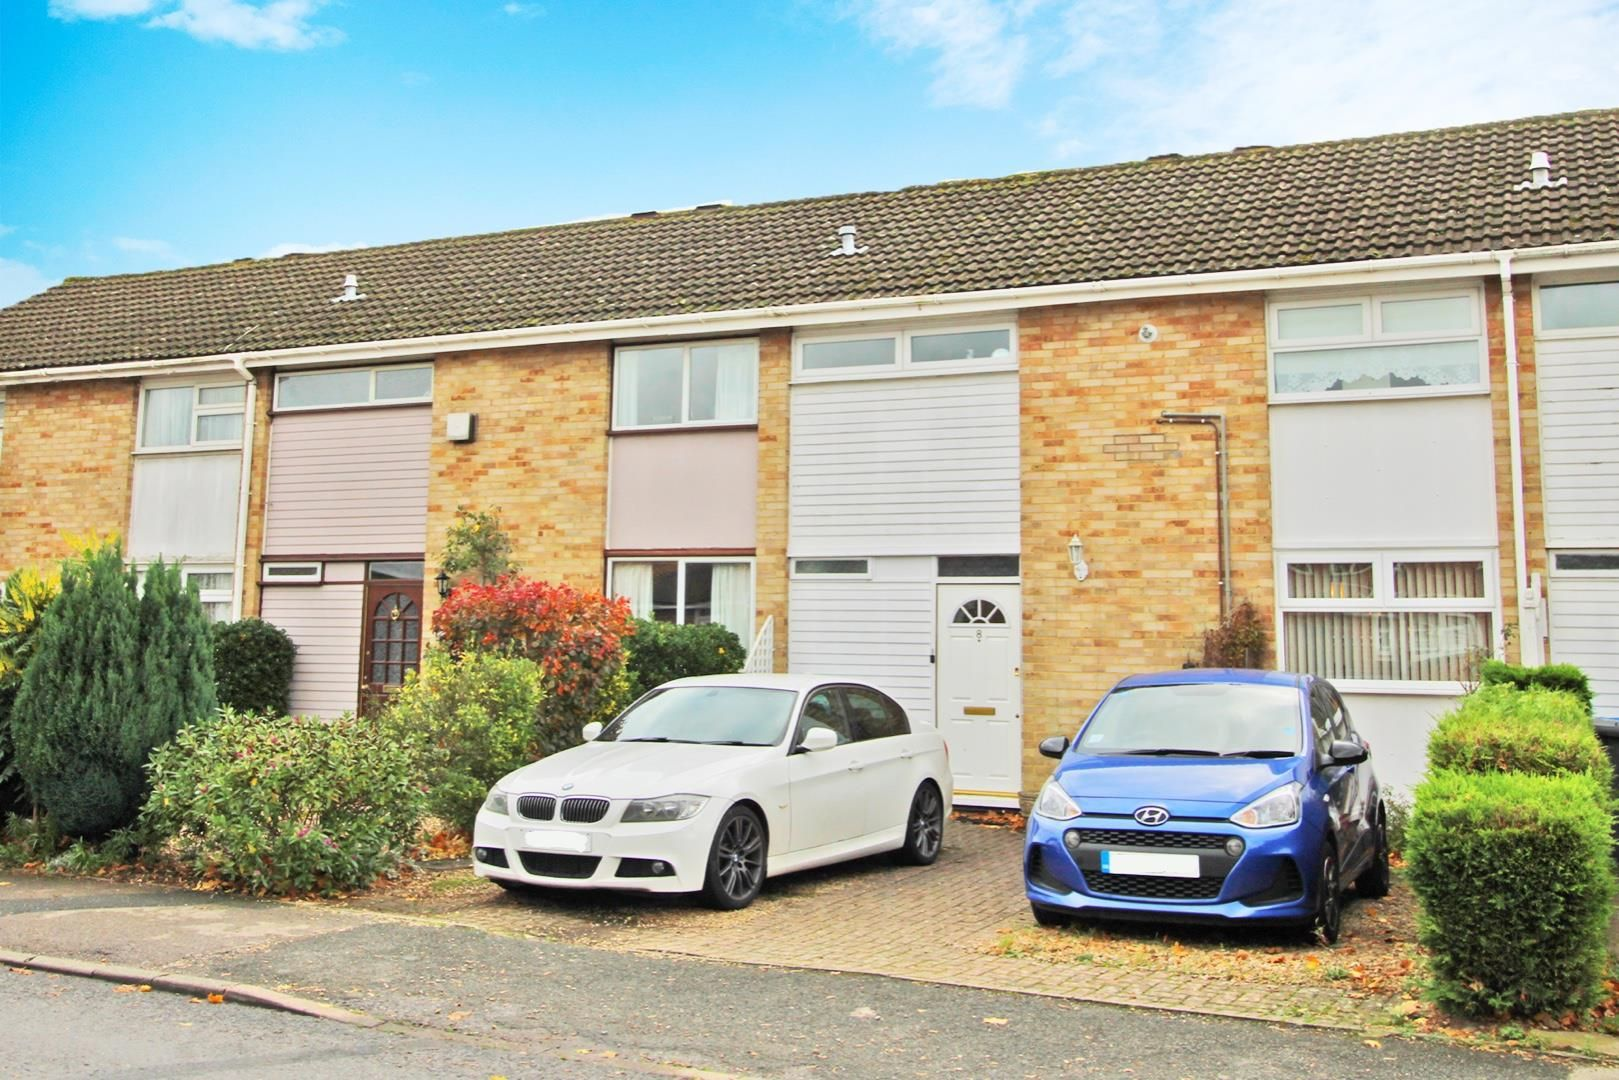 3 bed terraced for sale, SL6